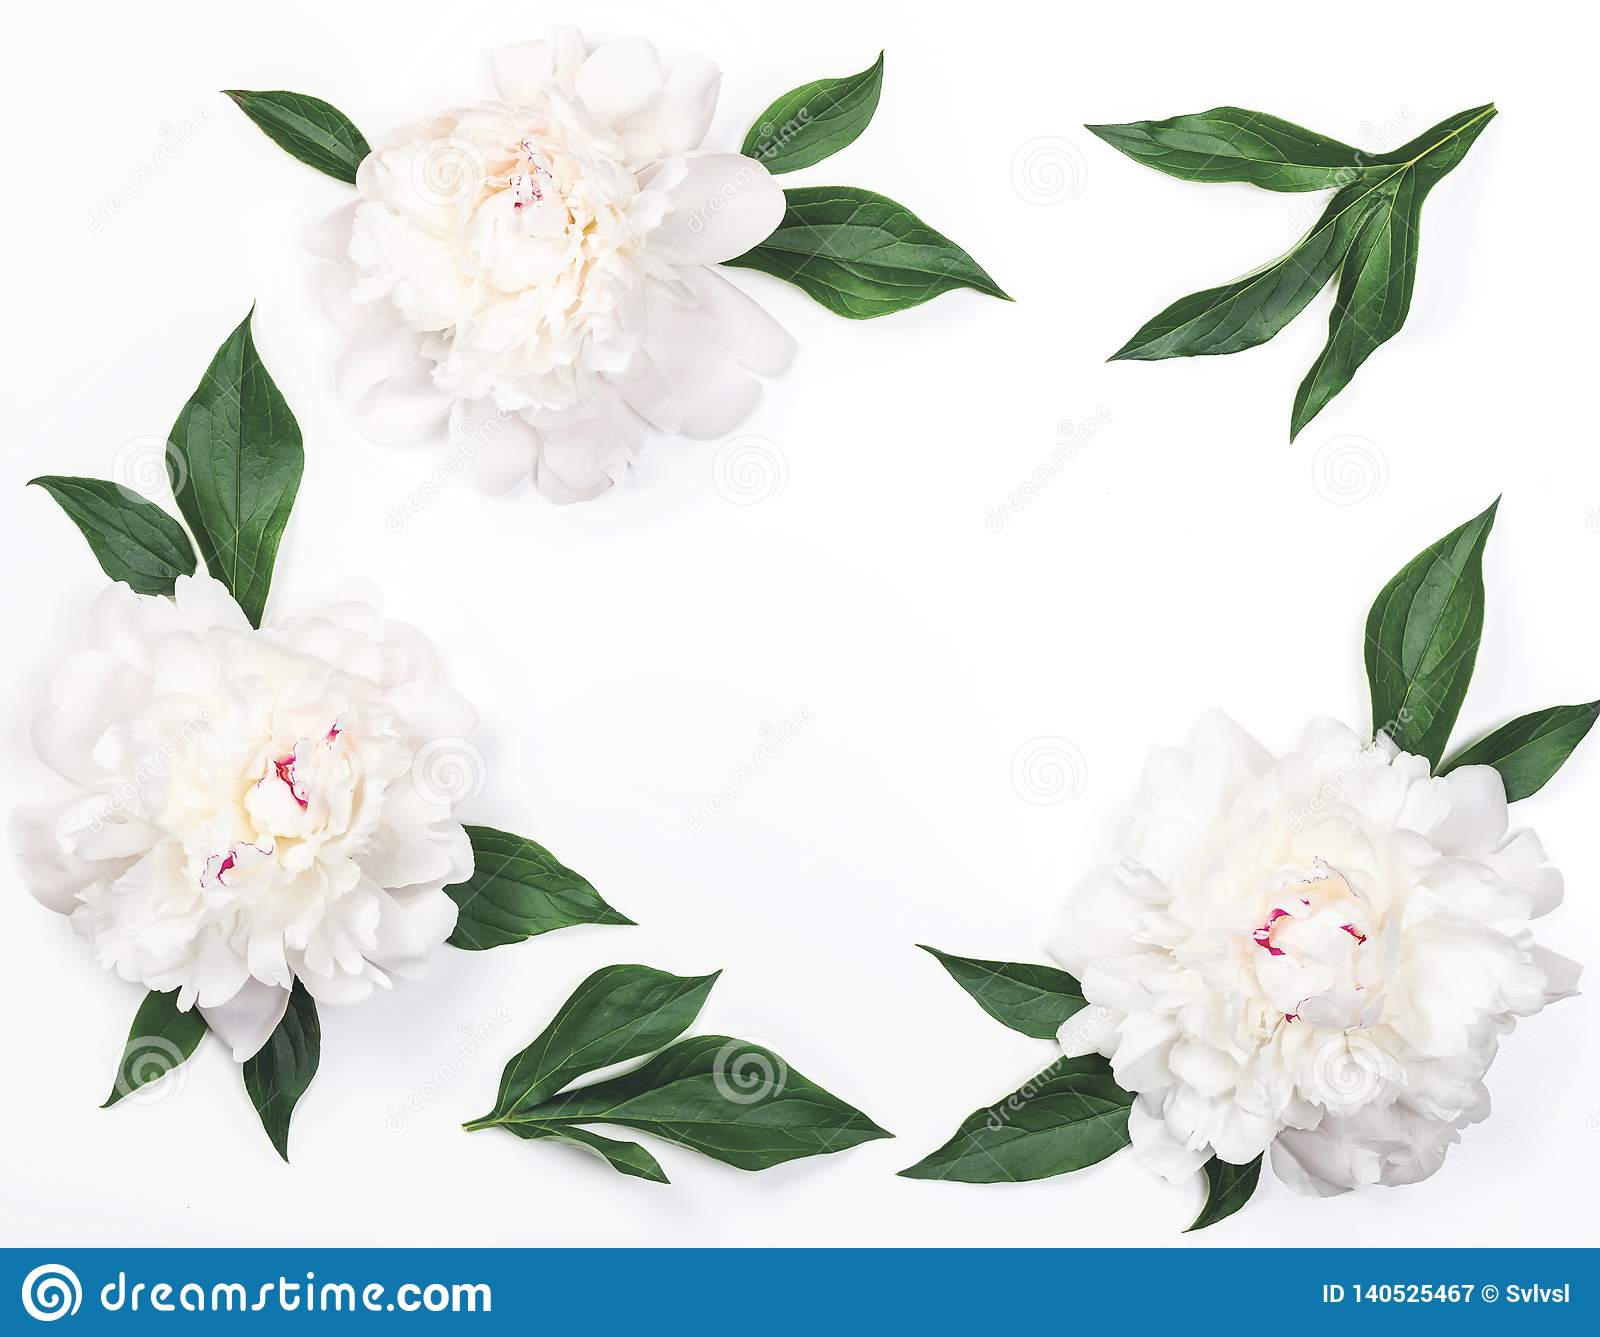 Frame of white peony flowers and leaves isolated on white background. Flat lay.